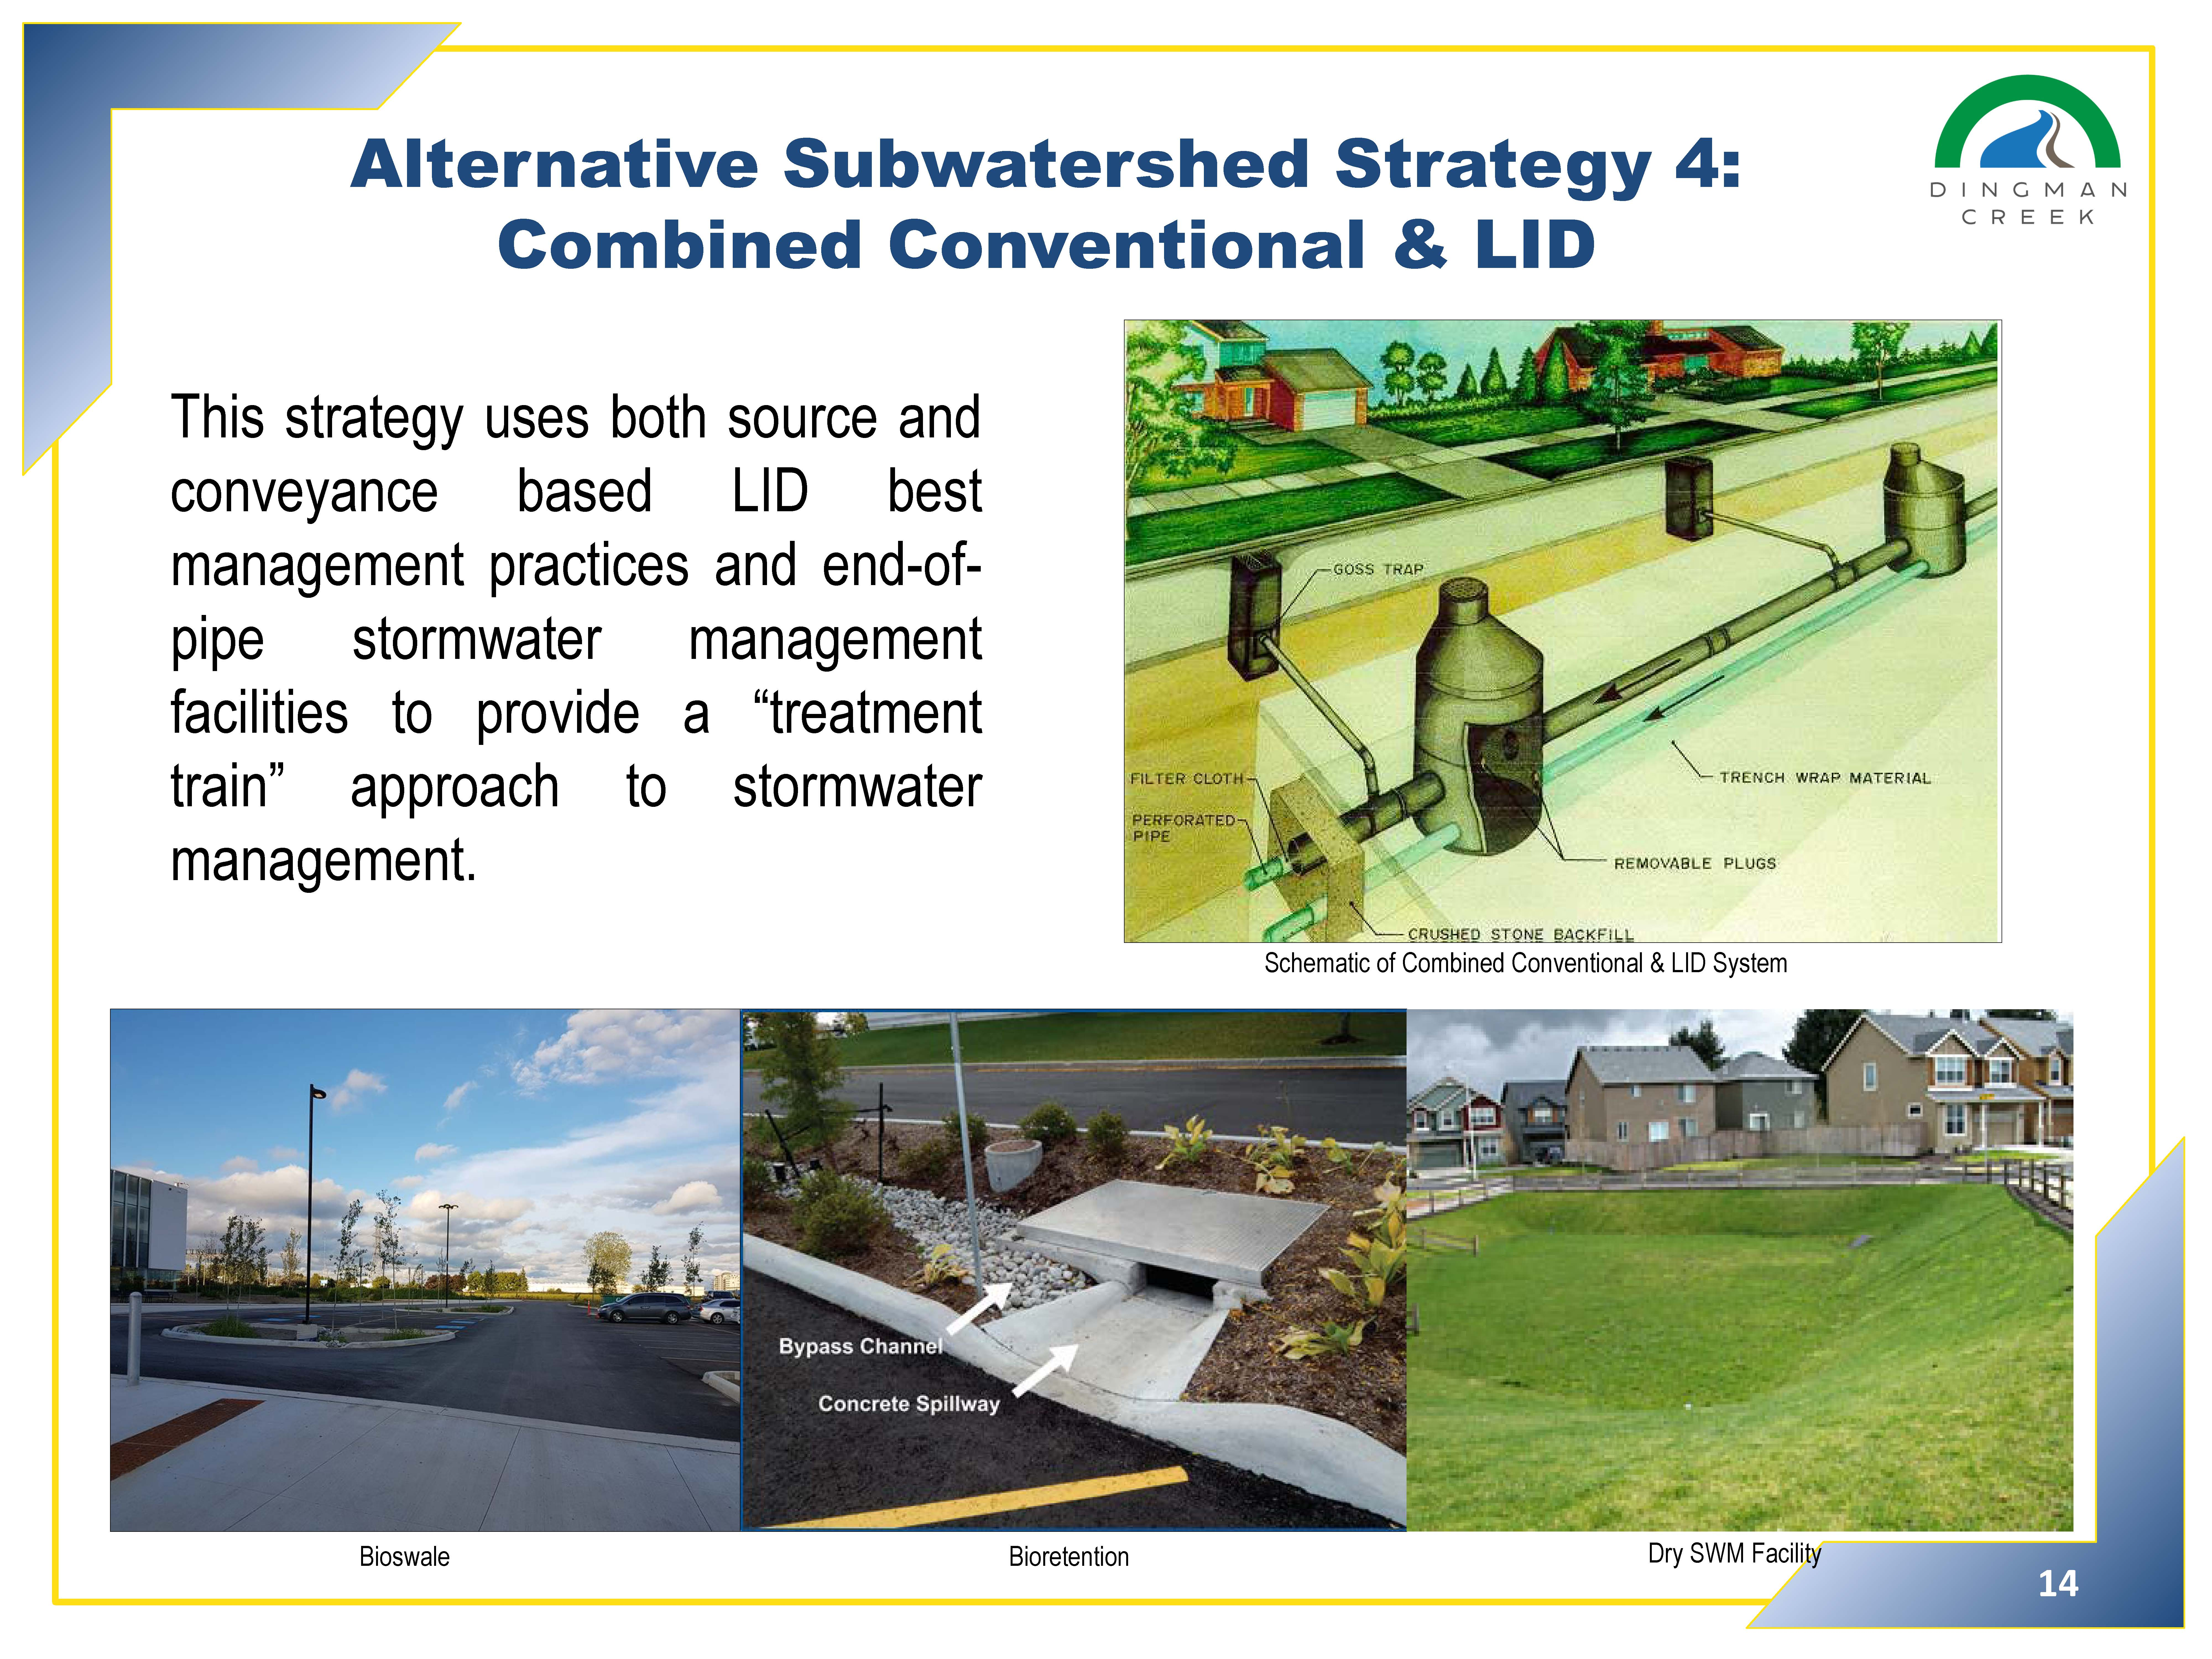 Alternative subwatershed strateg 4 - Combined conventional and LID